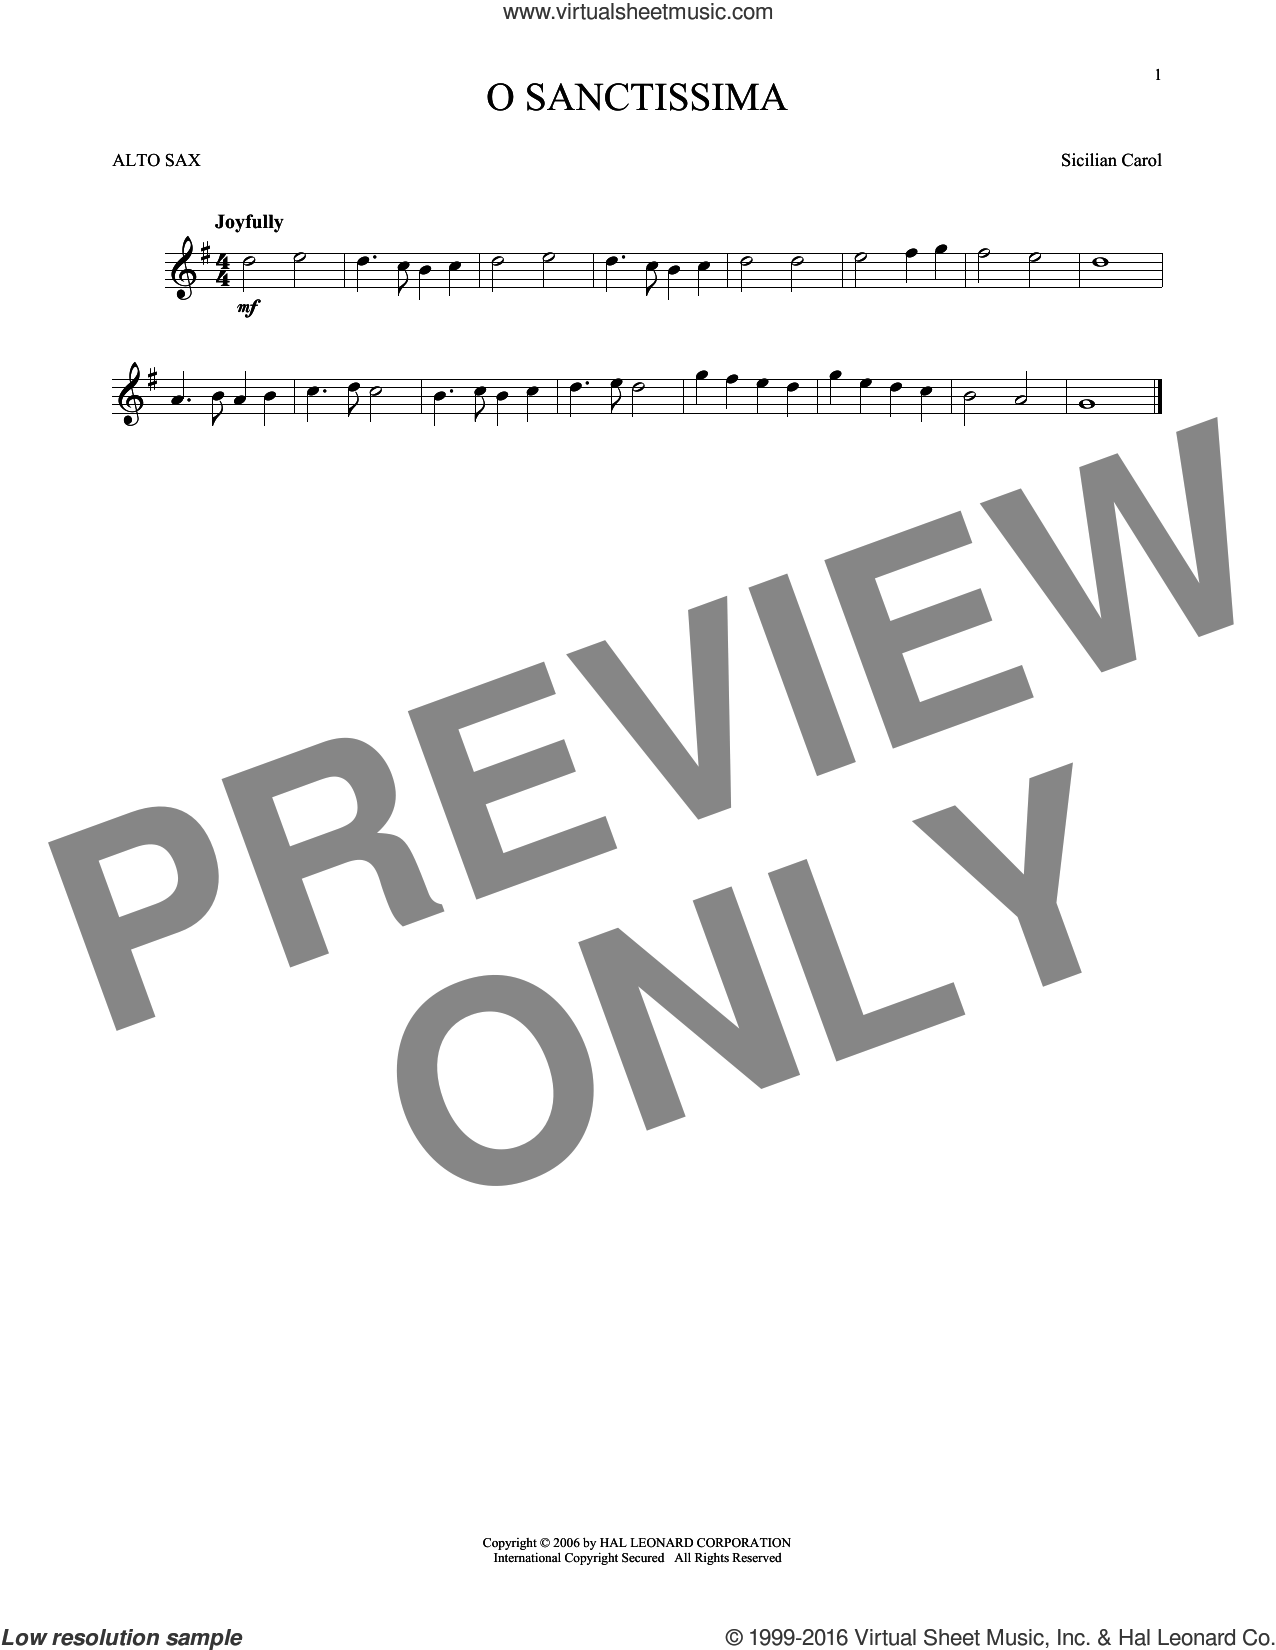 O Sanctissima sheet music for alto saxophone solo. Score Image Preview.